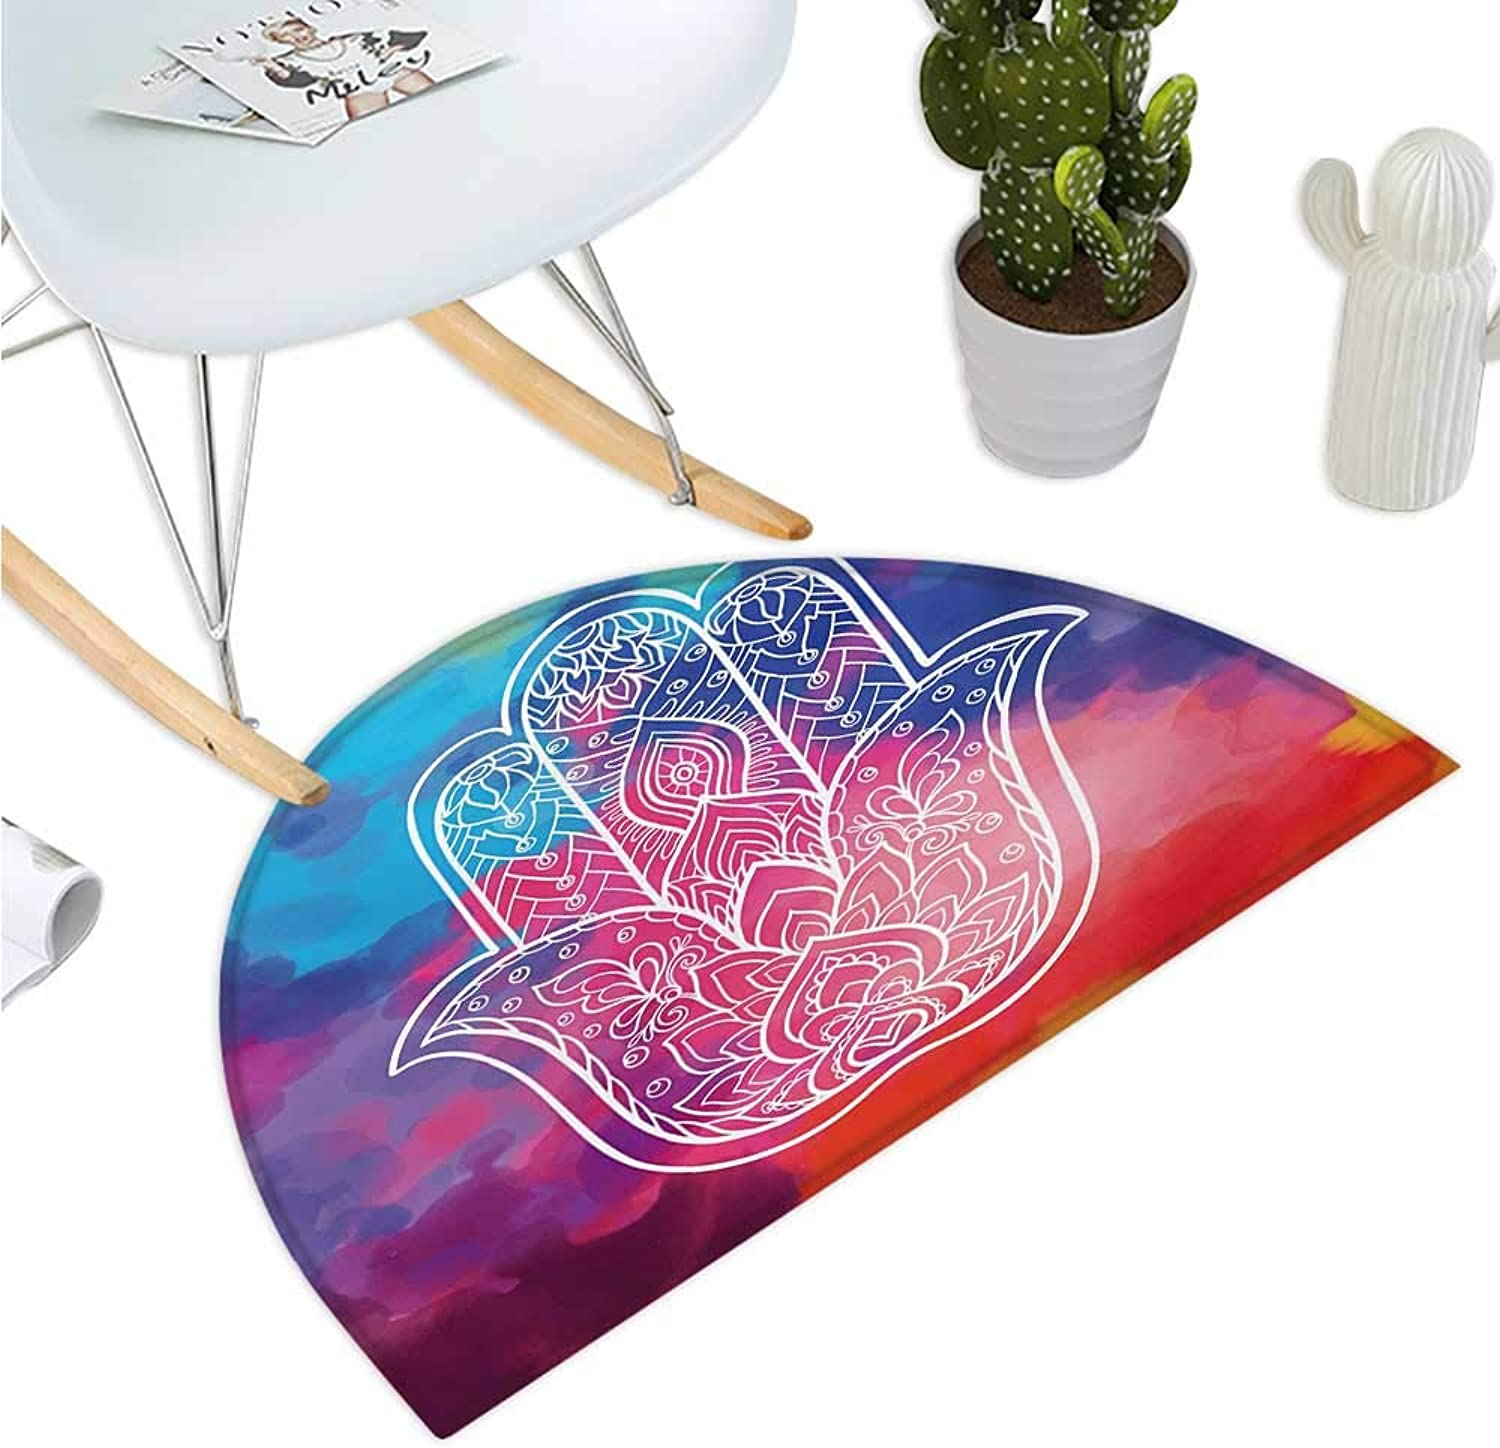 Hamsa Semicircular Cushion colorful Watercolor Background with Hand Drawn Eastern Mantra Figure Gentle Swirls Entry Door Mat H 35.4  xD 53.1  Multicolor